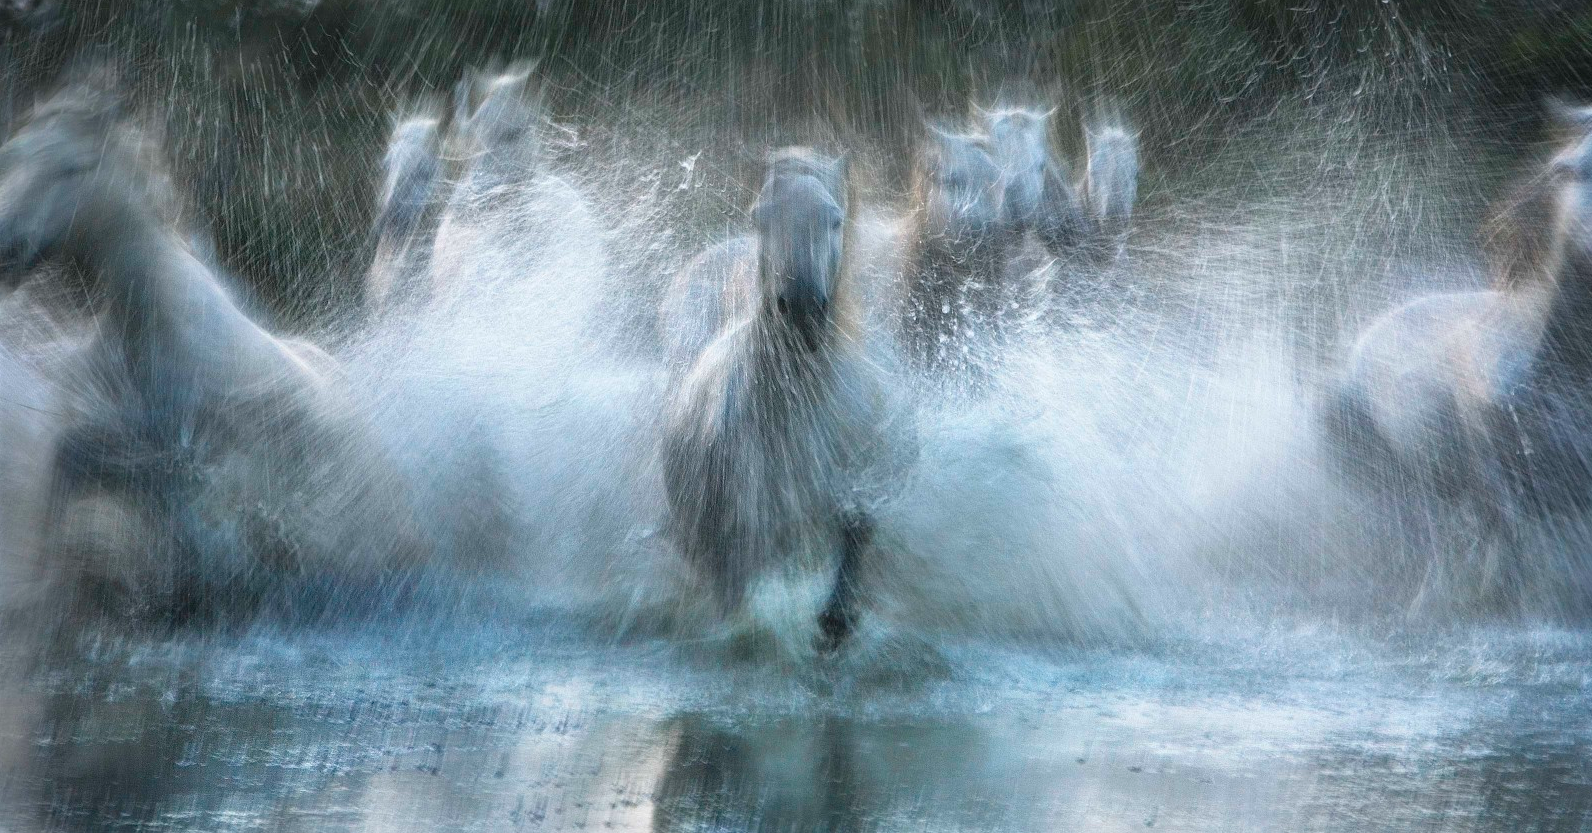 Equus by Tim Flach